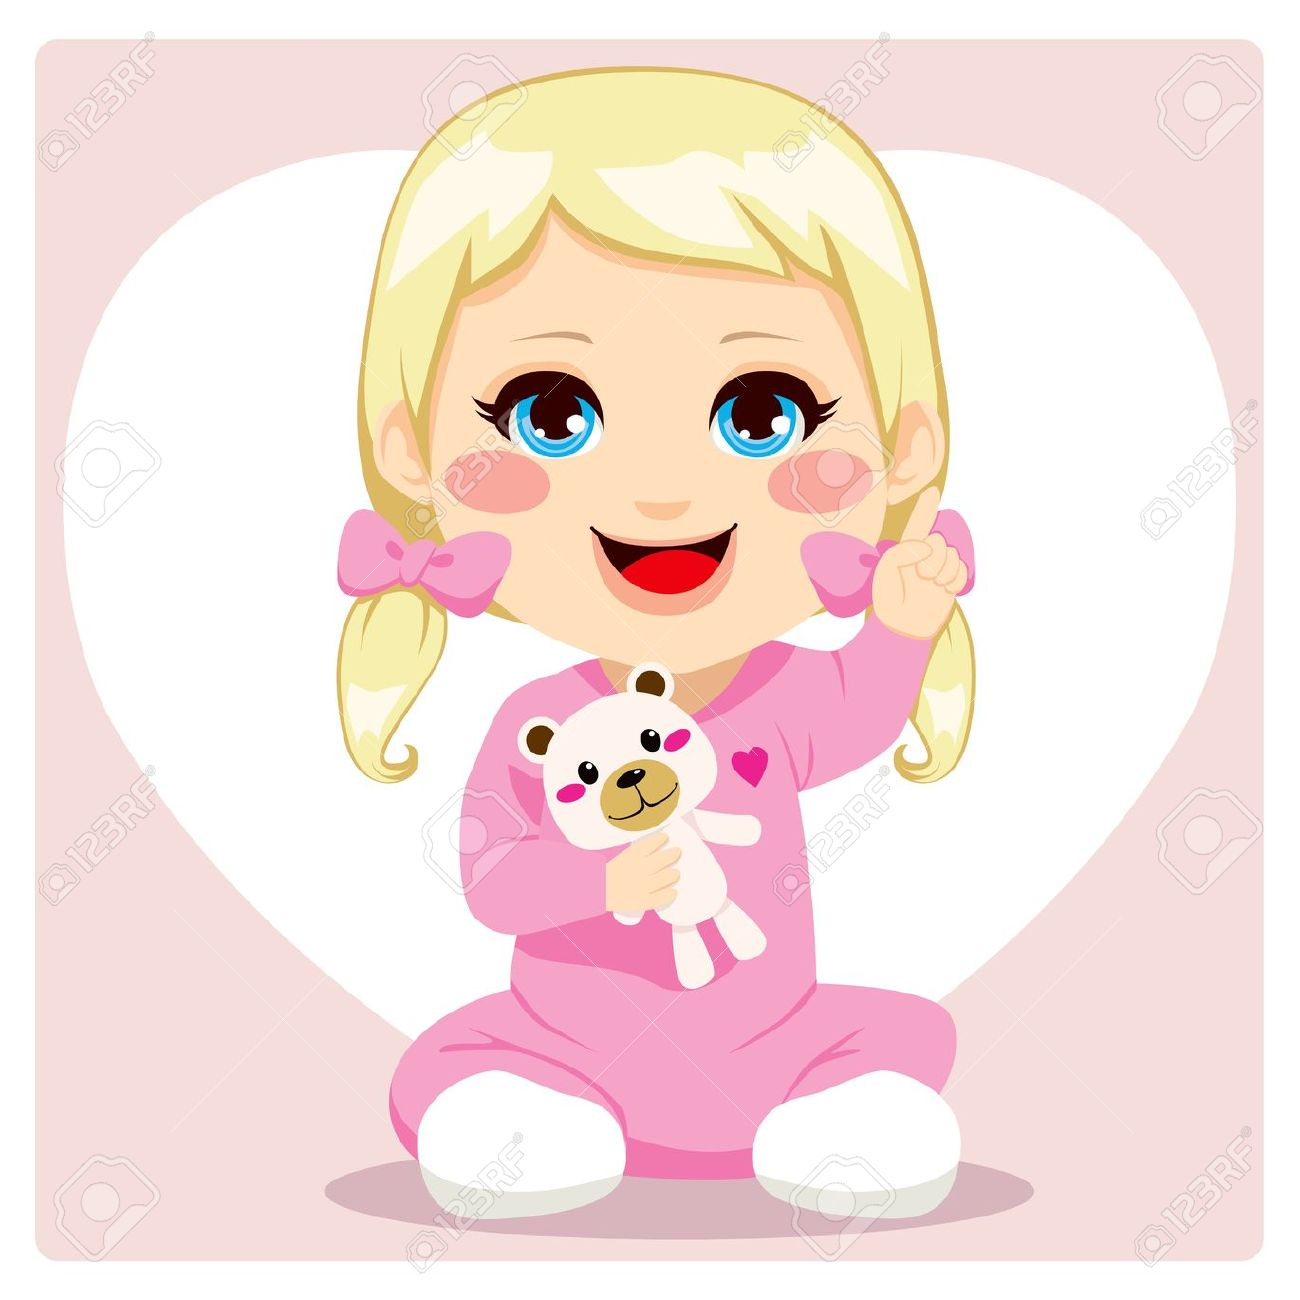 Baby girl thumbs up clipart vector freeuse library Baby girl thumbs up clipart - ClipartFest vector freeuse library